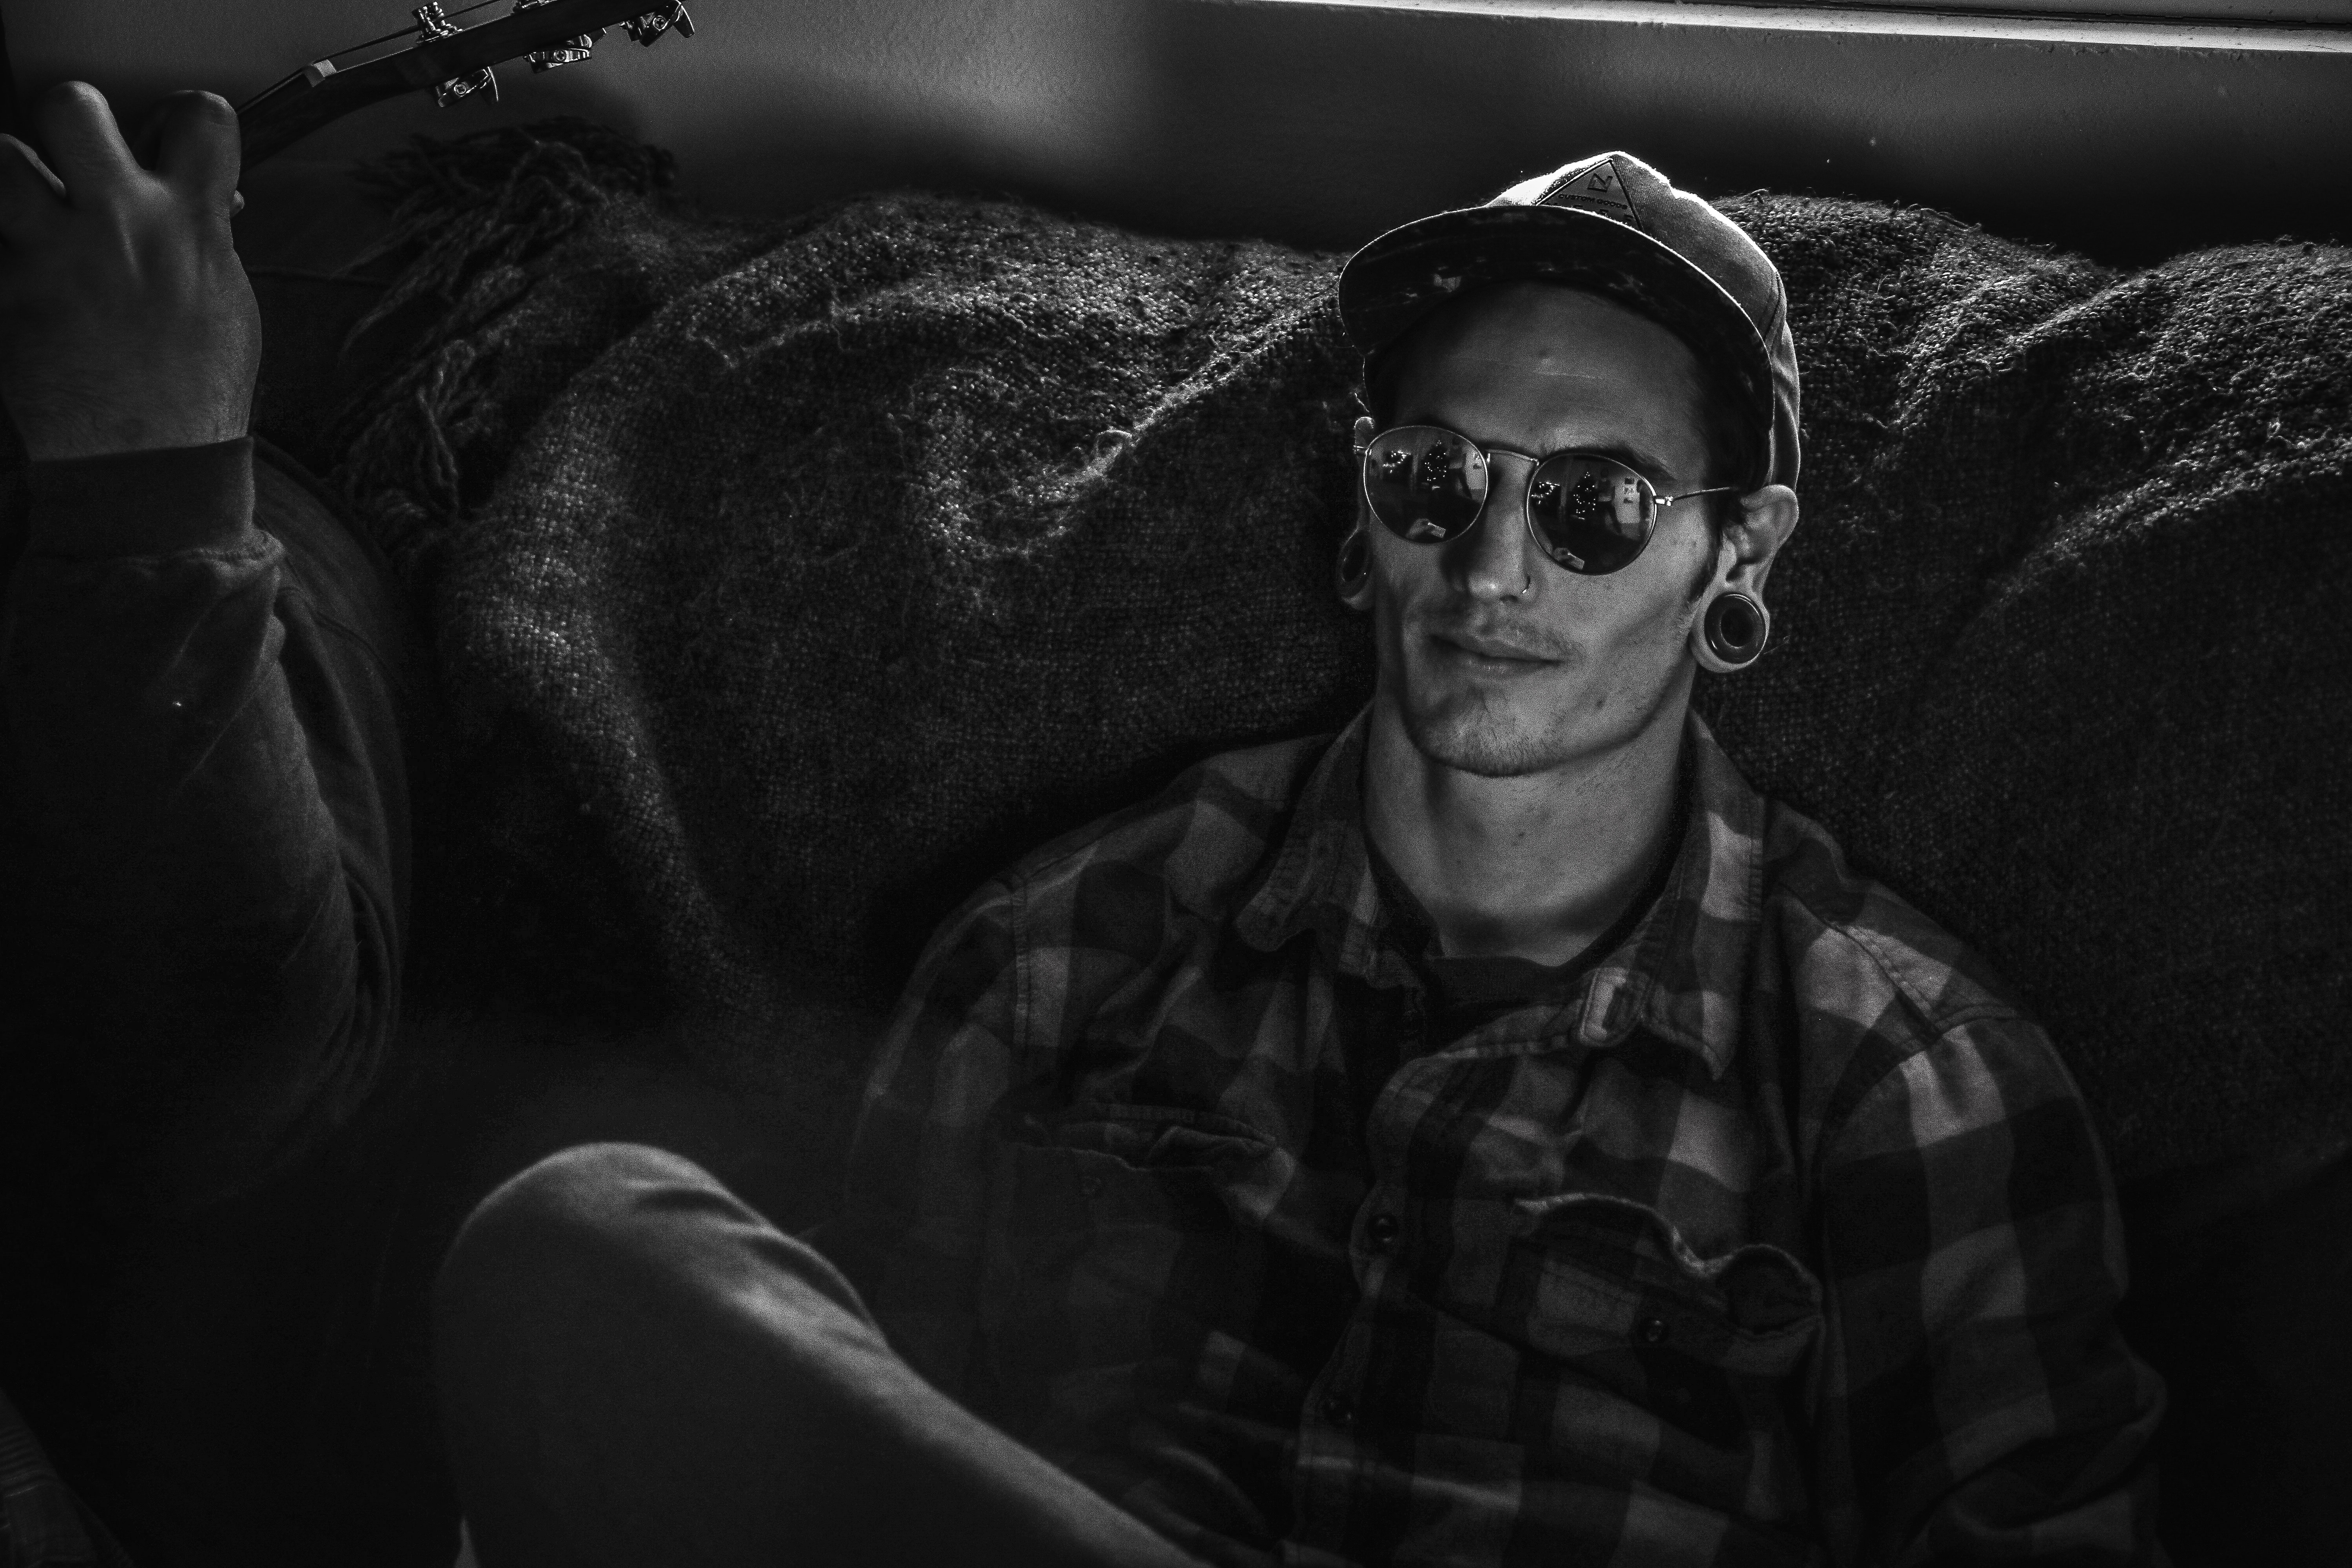 Grayscale Photo of Man Wearing Snapback Cap and Plaid Dress Shirt Sitting on Couch, Sit, People, Sitting, Style, HQ Photo